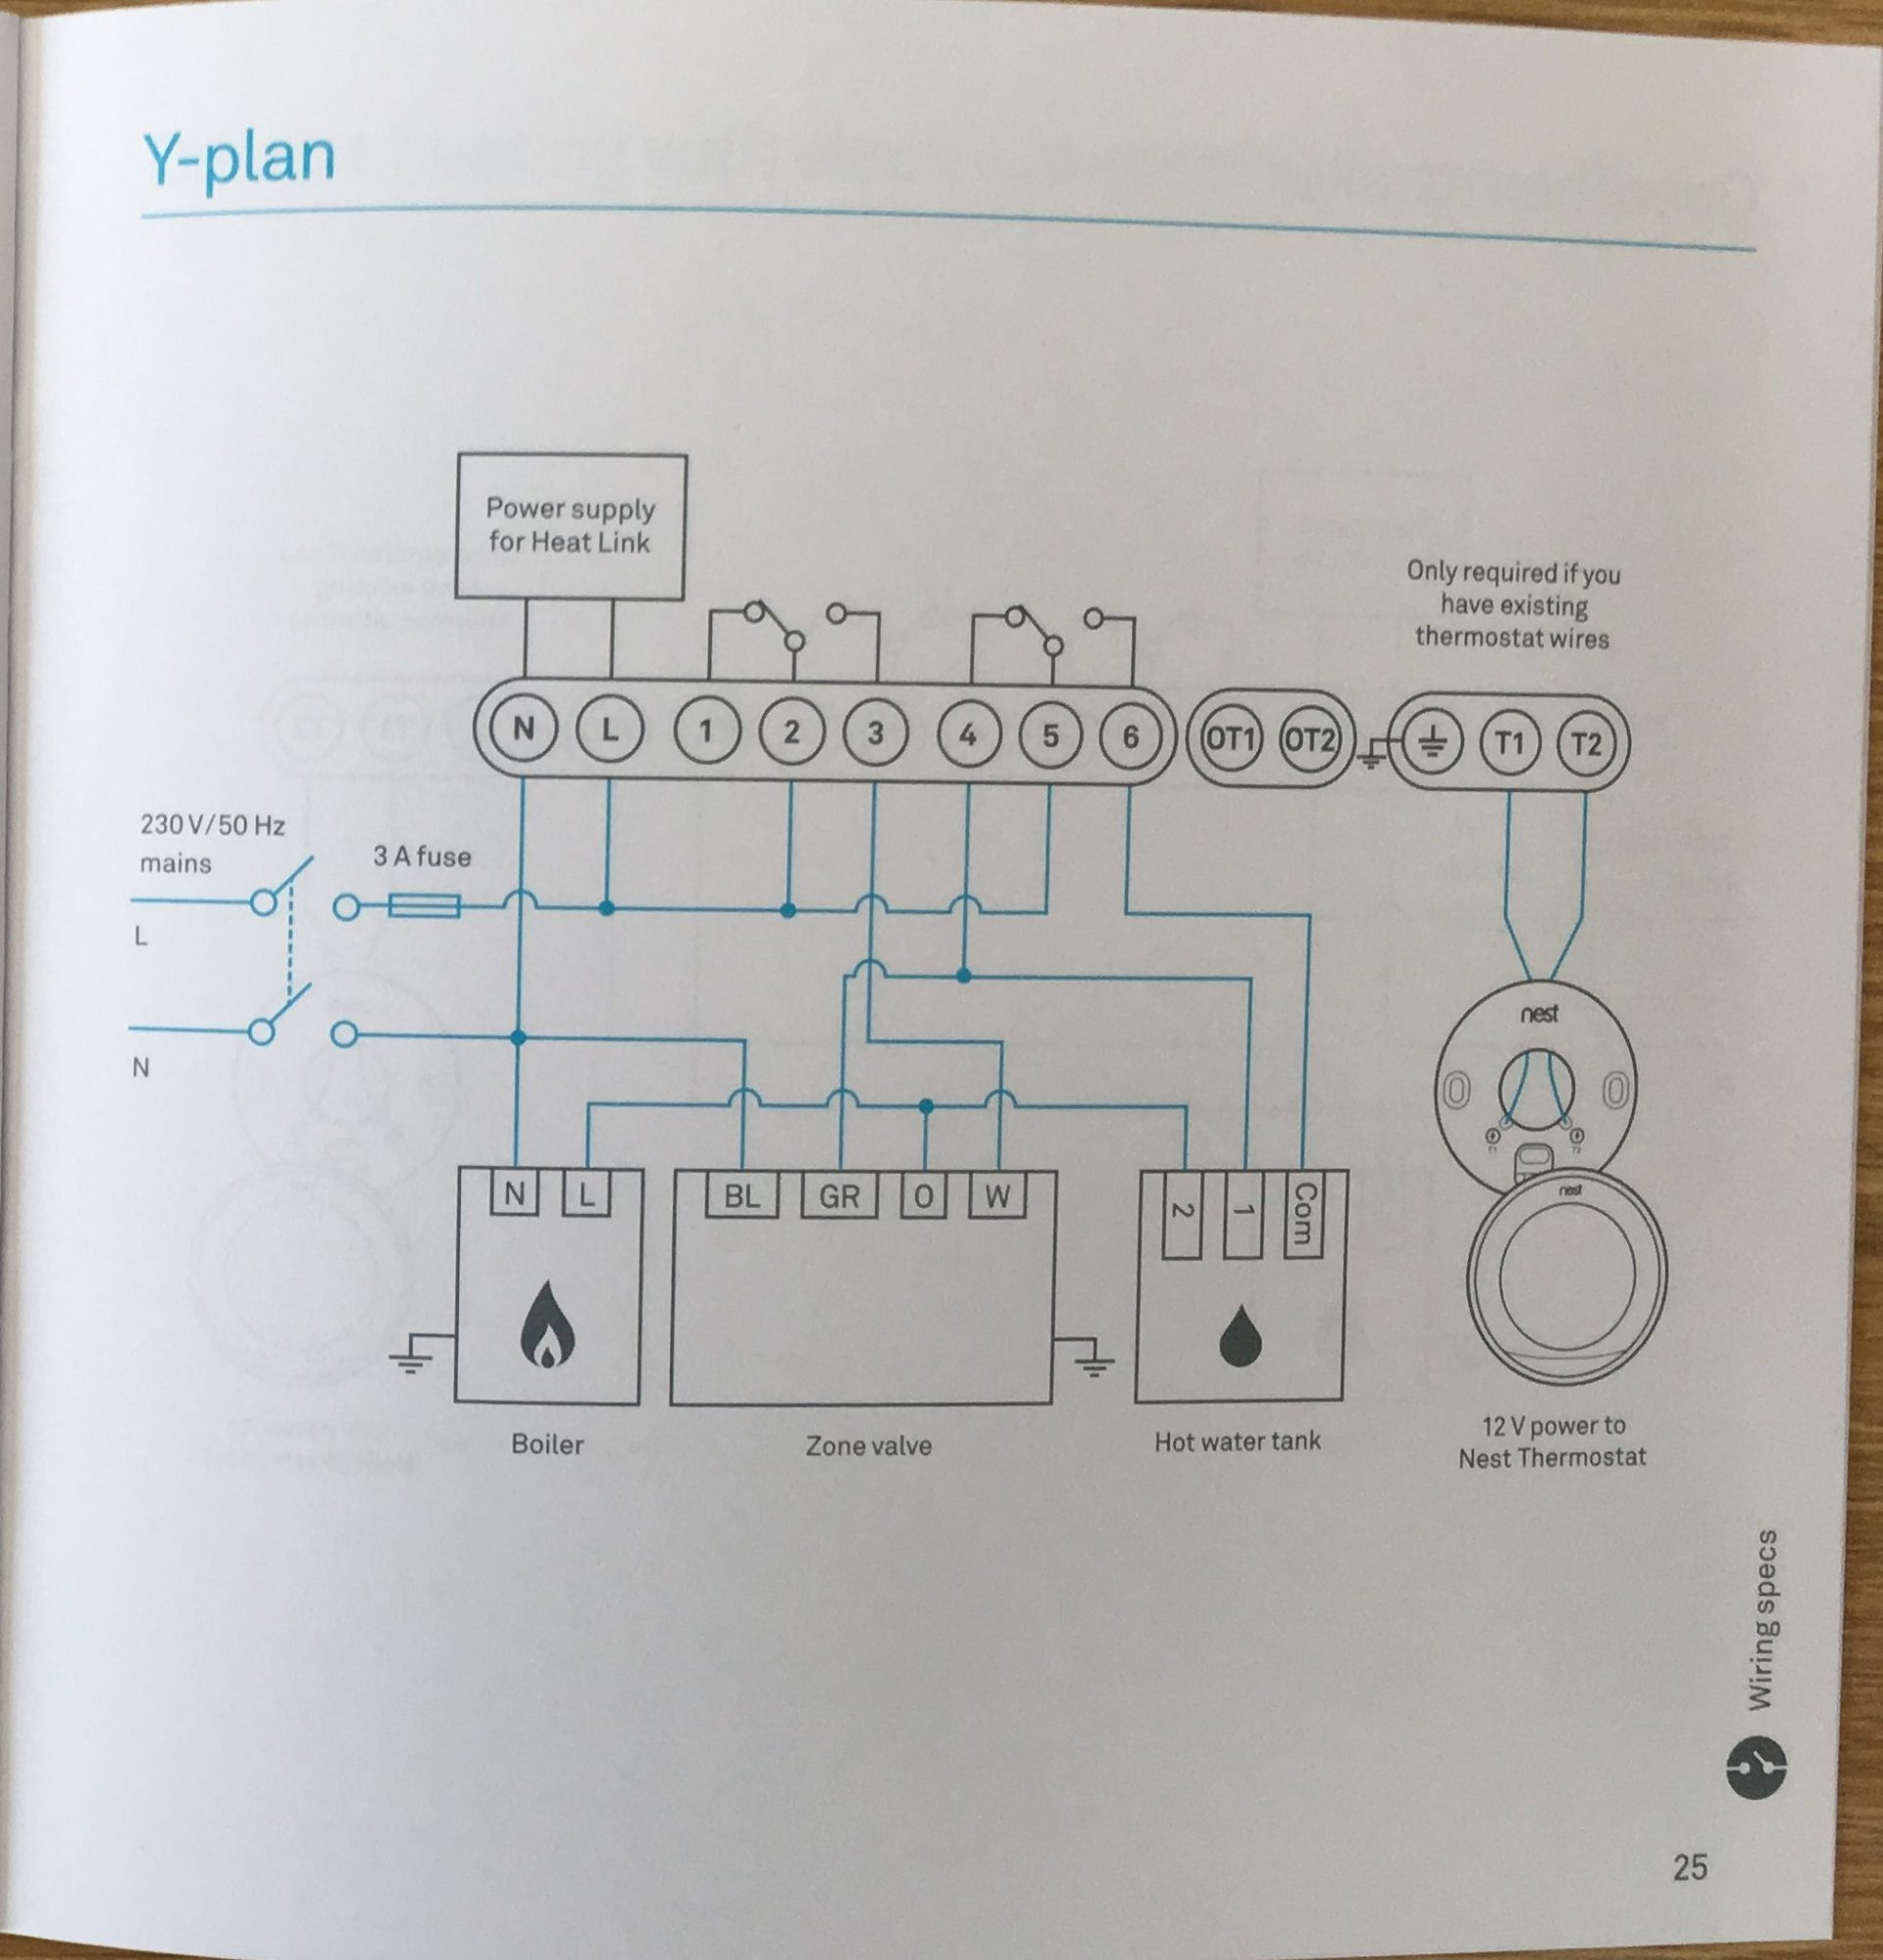 How To Install The Nest Learning Thermostat (3Rd Gen) In A Y-Plan - Nest Room Stat Wiring Diagram